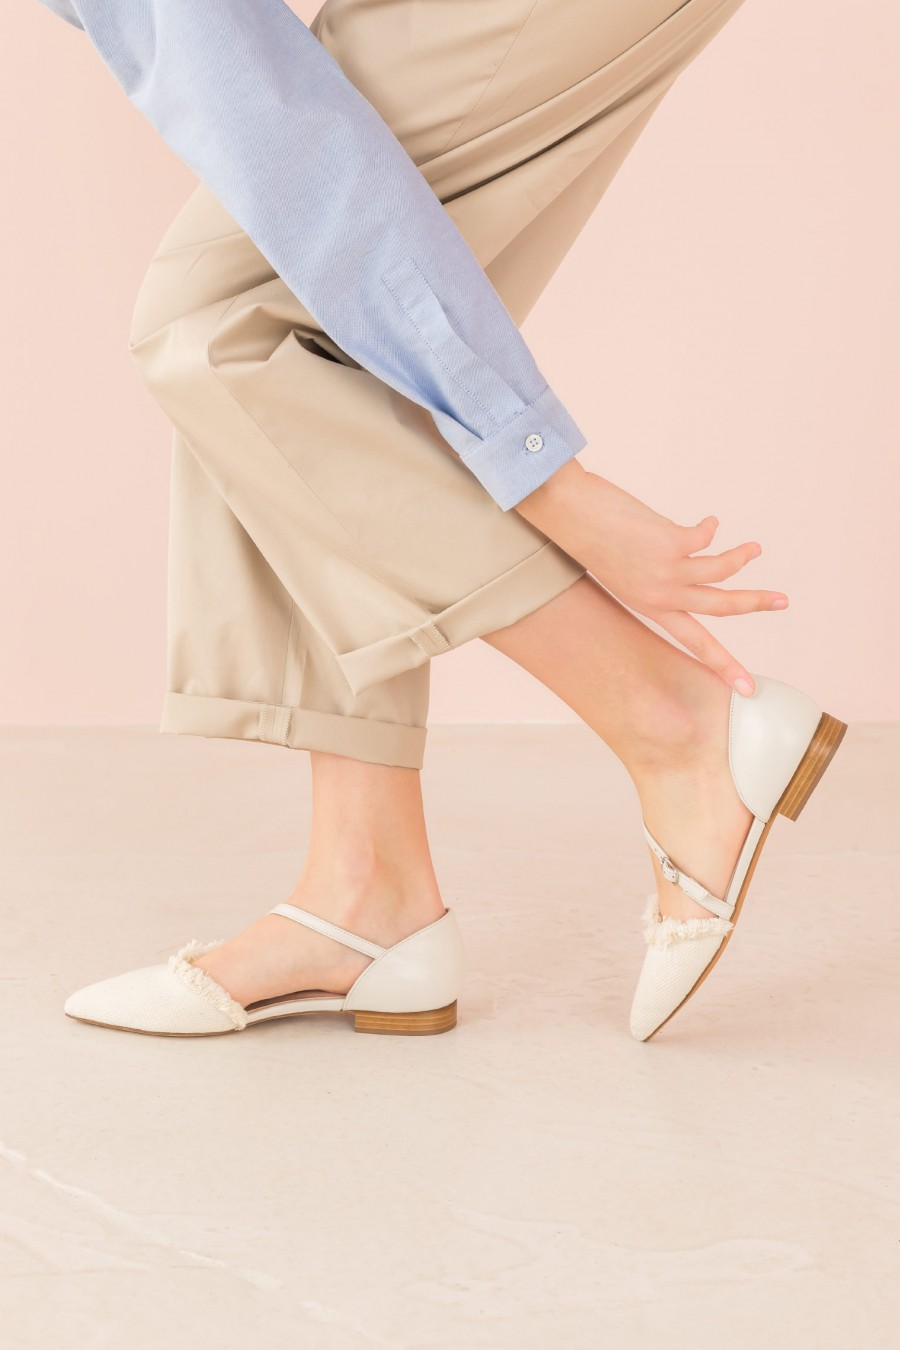 white shoes with diagonal buckle